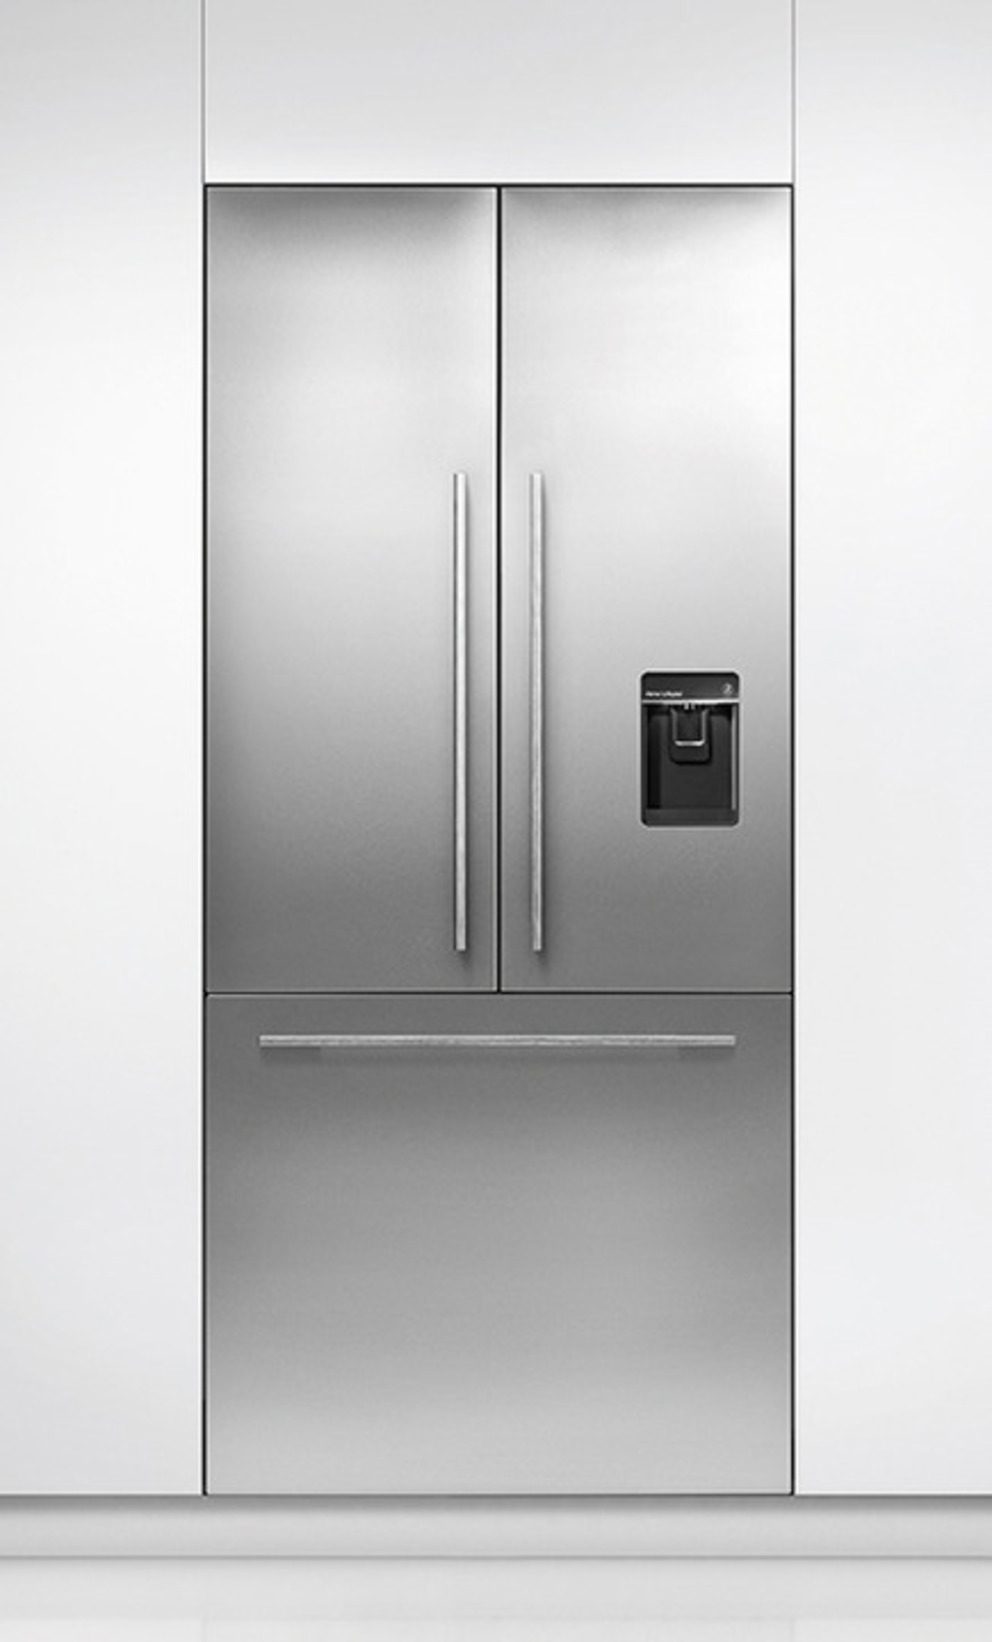 Fridges Fisher&Paykel RS36A80U1 + RD3680U (80'' F&P)